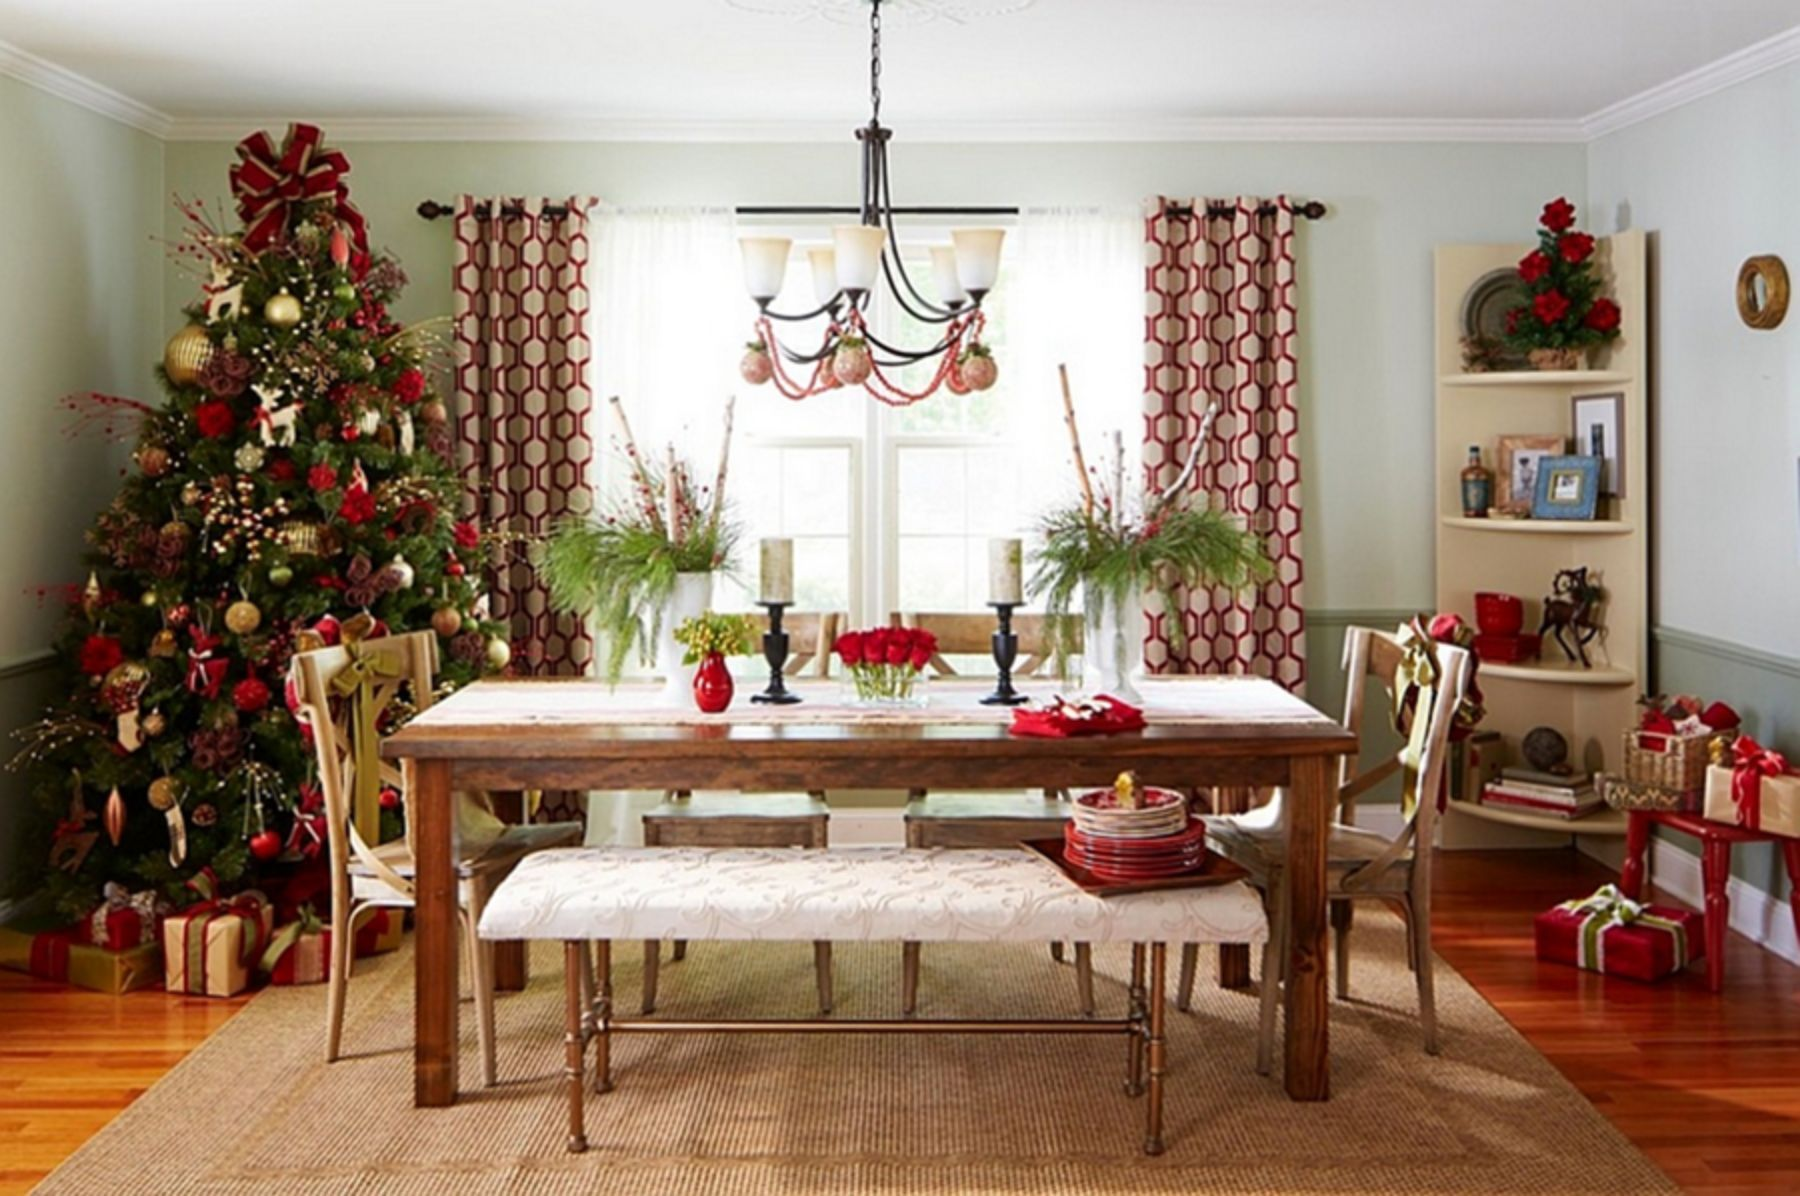 Epic 10 best modern christmas decoration ideas for your home interior https